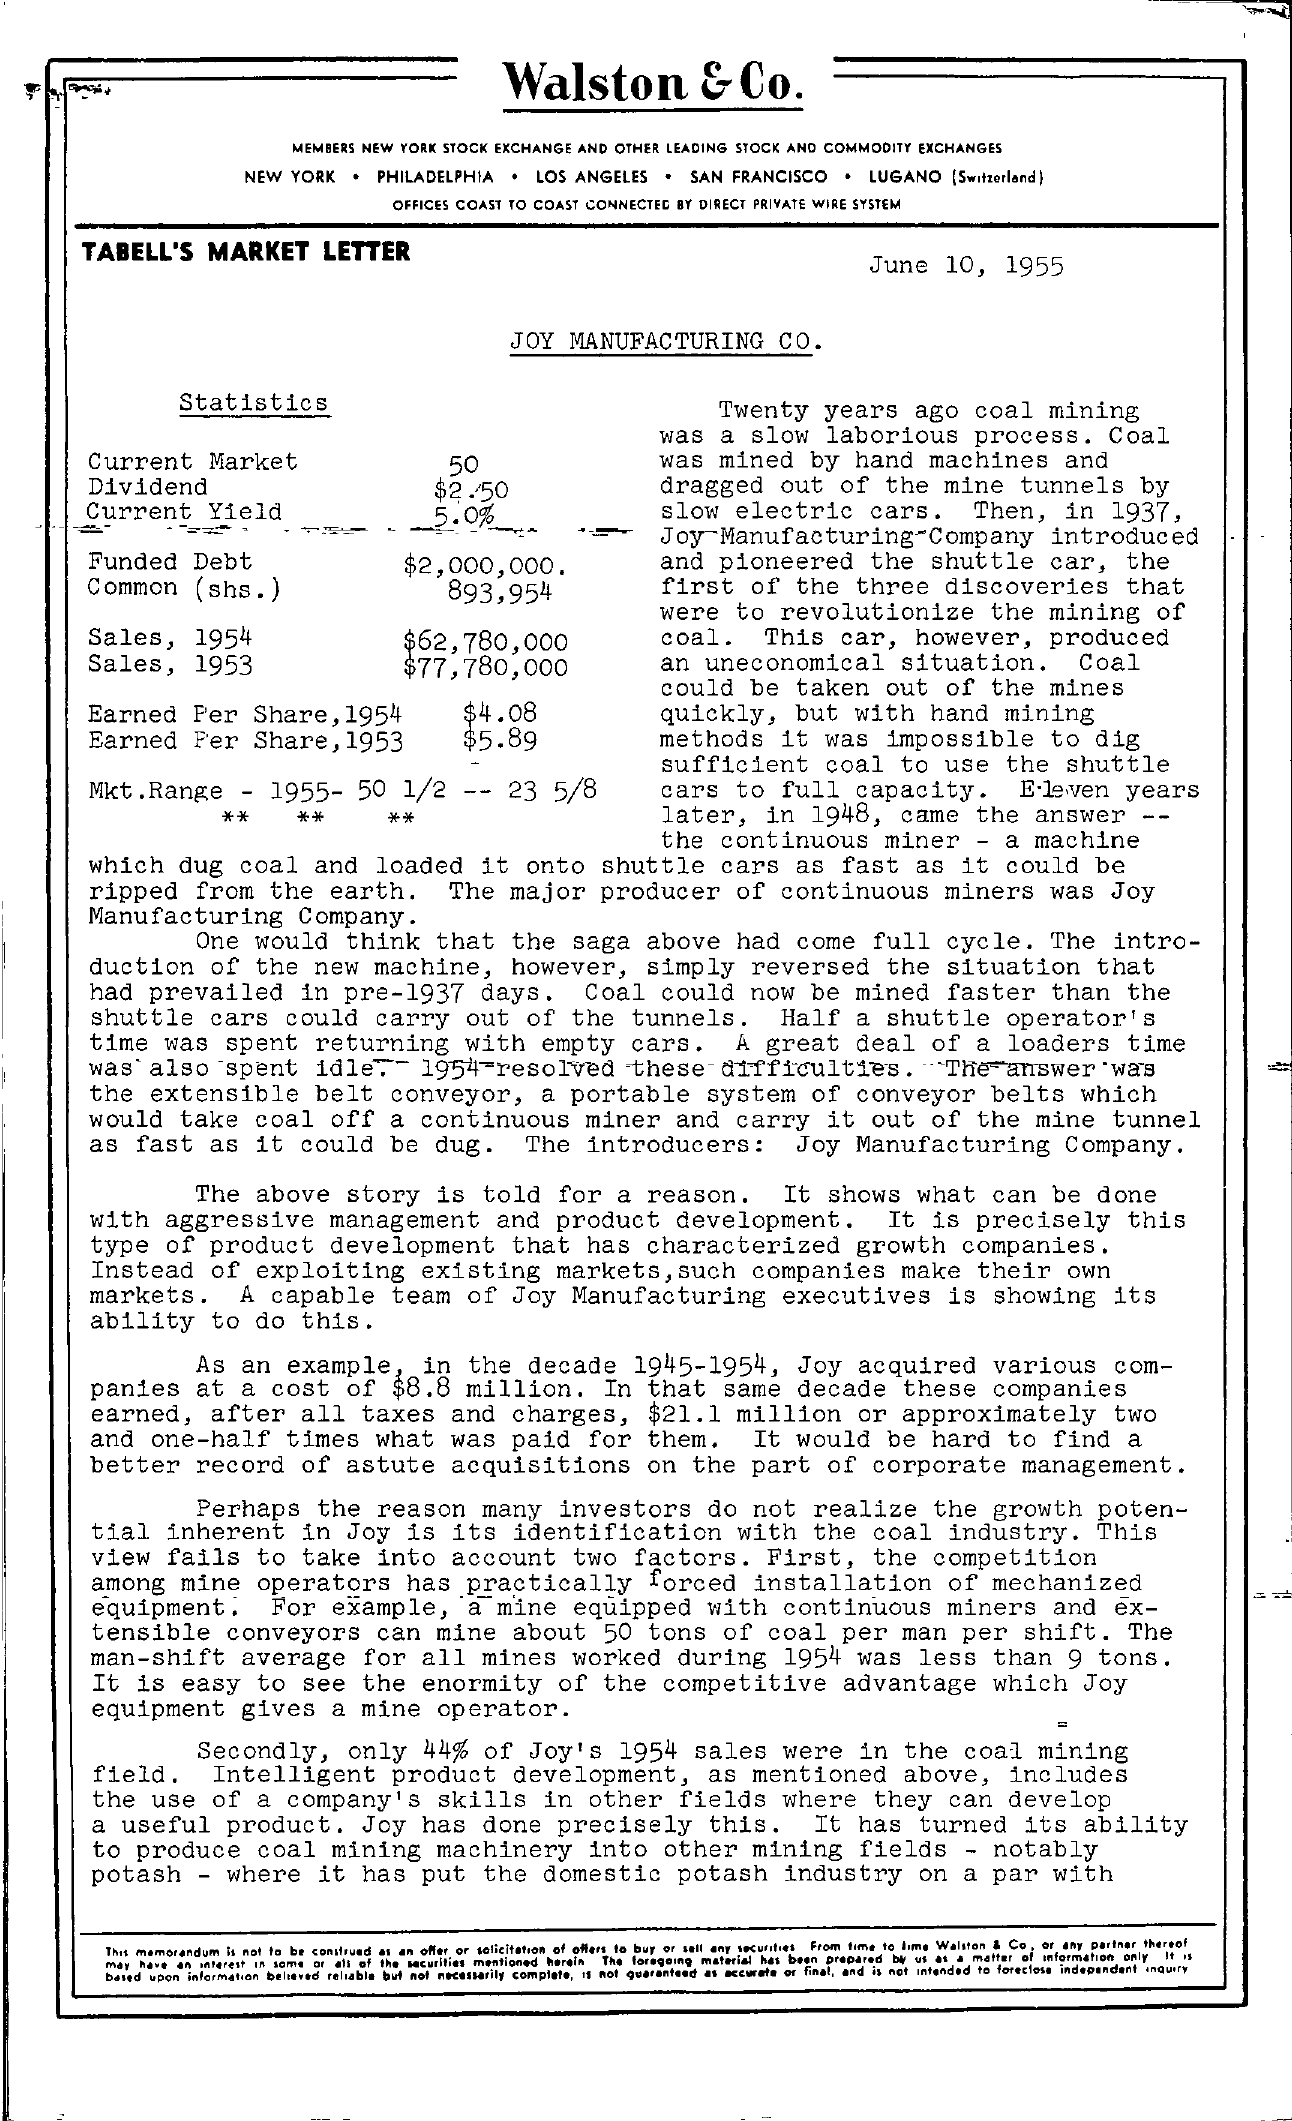 Tabell's Market Letter - June 10, 1955 page 1